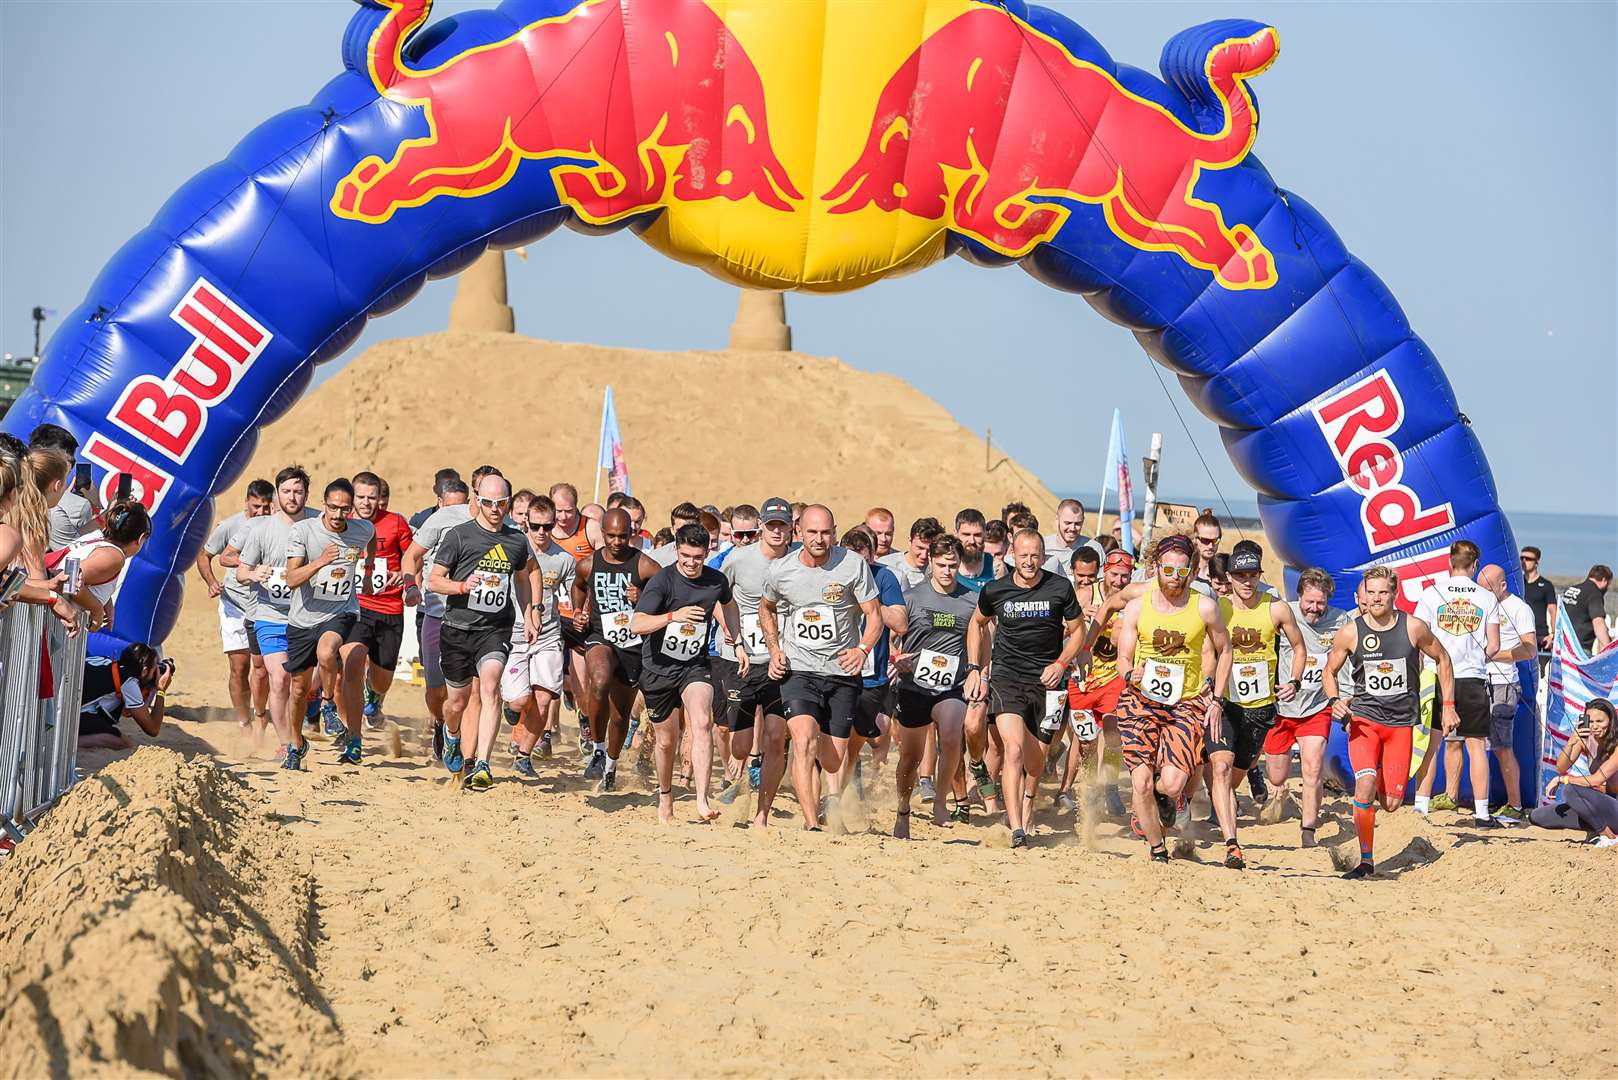 More than 600 competitors will take on the Red Bull Quicksand course in Margate